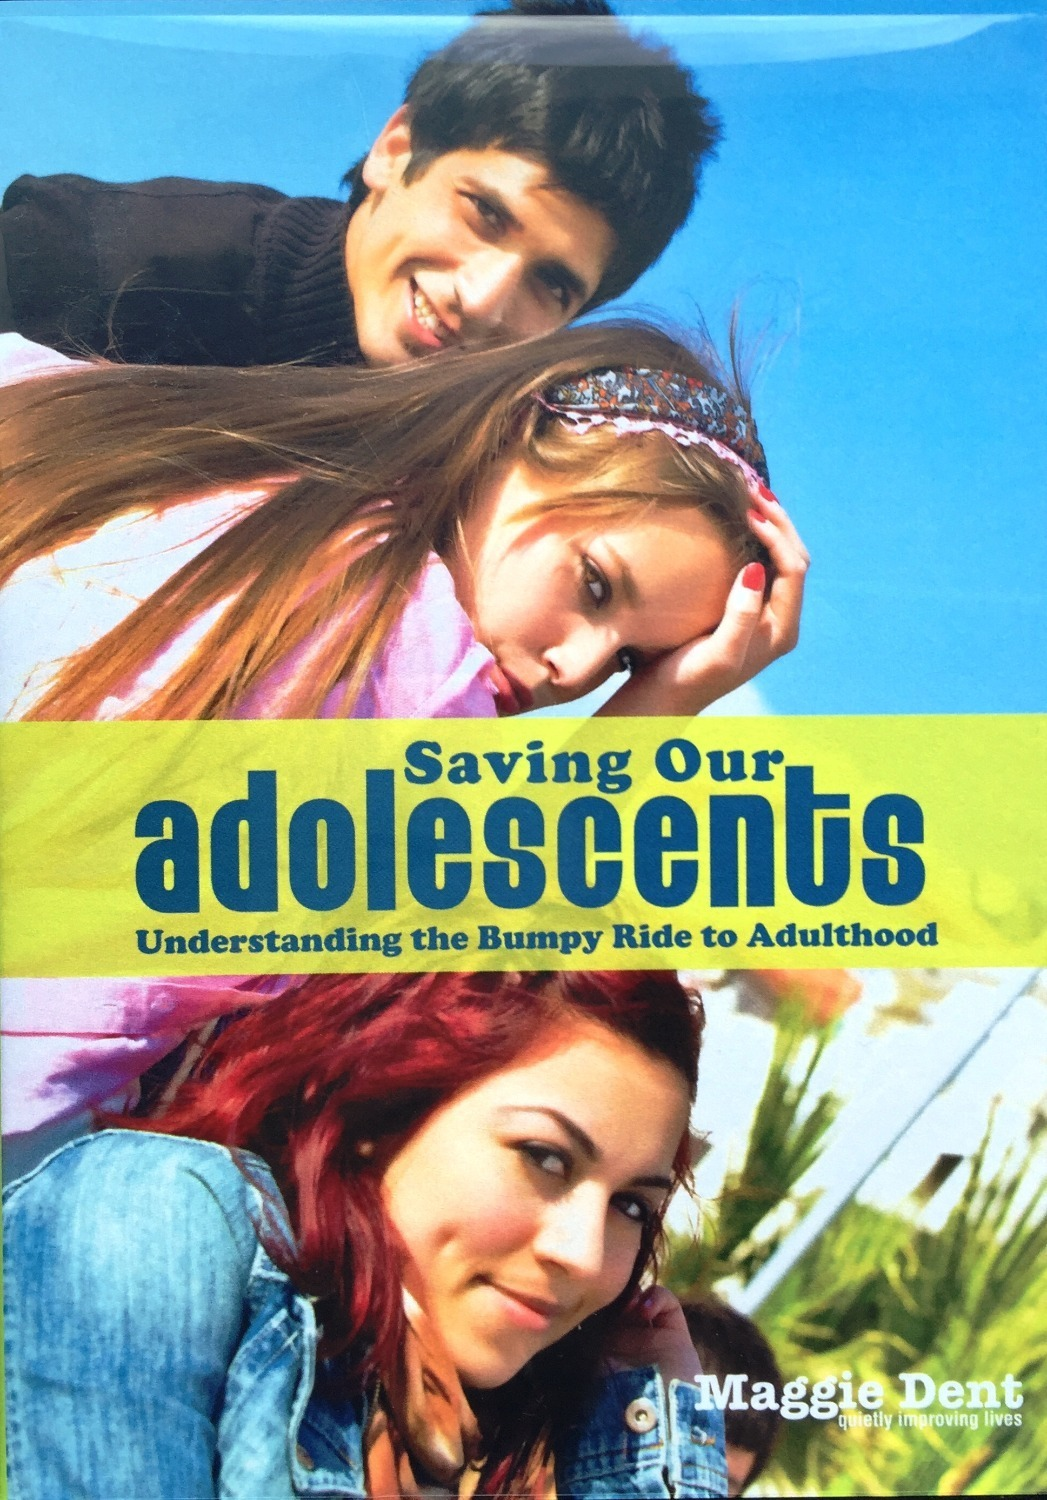 Saving Our Adolescents DVD - Maggie Dent 00000